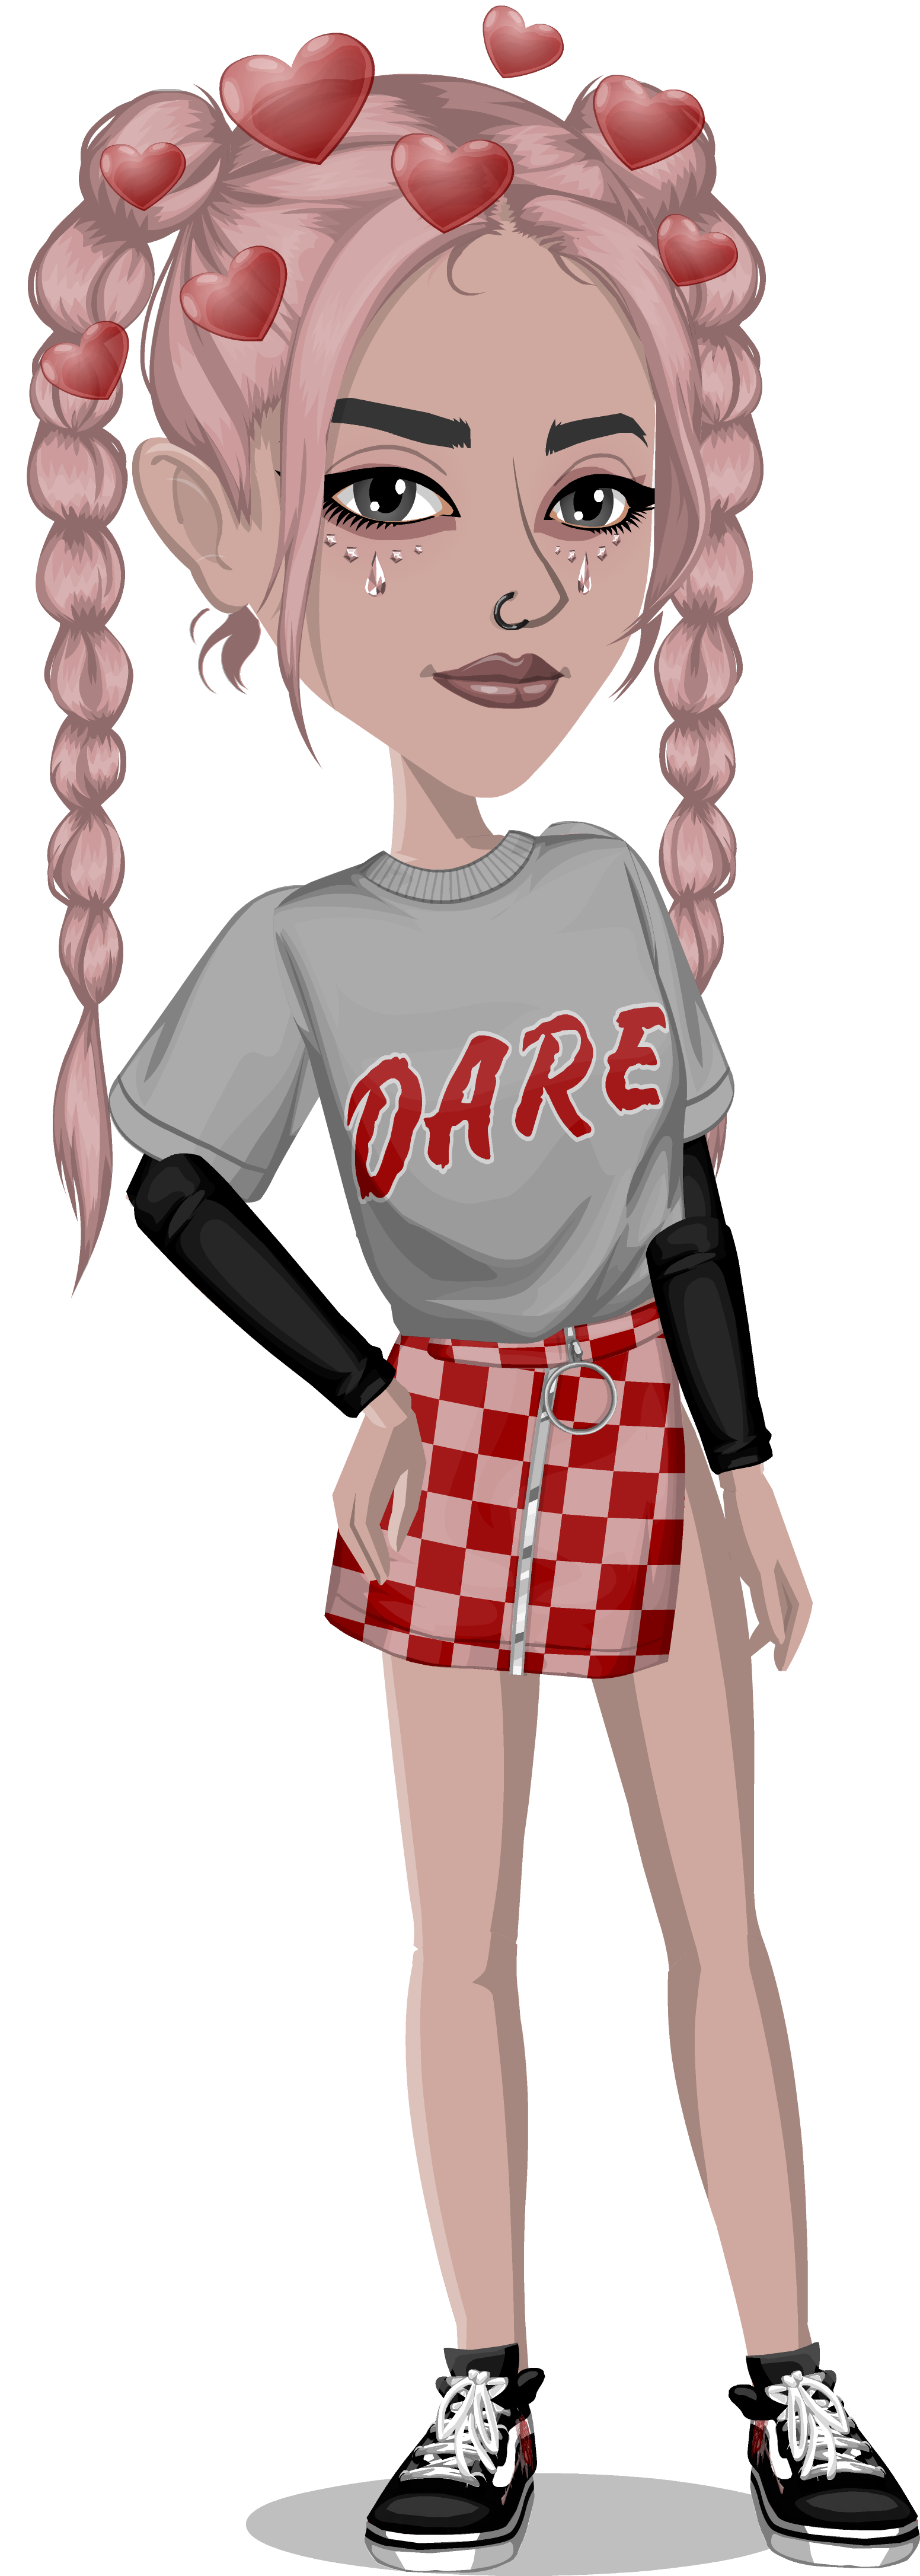 Moviestarplanet aesthetic | MSP Outfit Ideas in 2019 ...